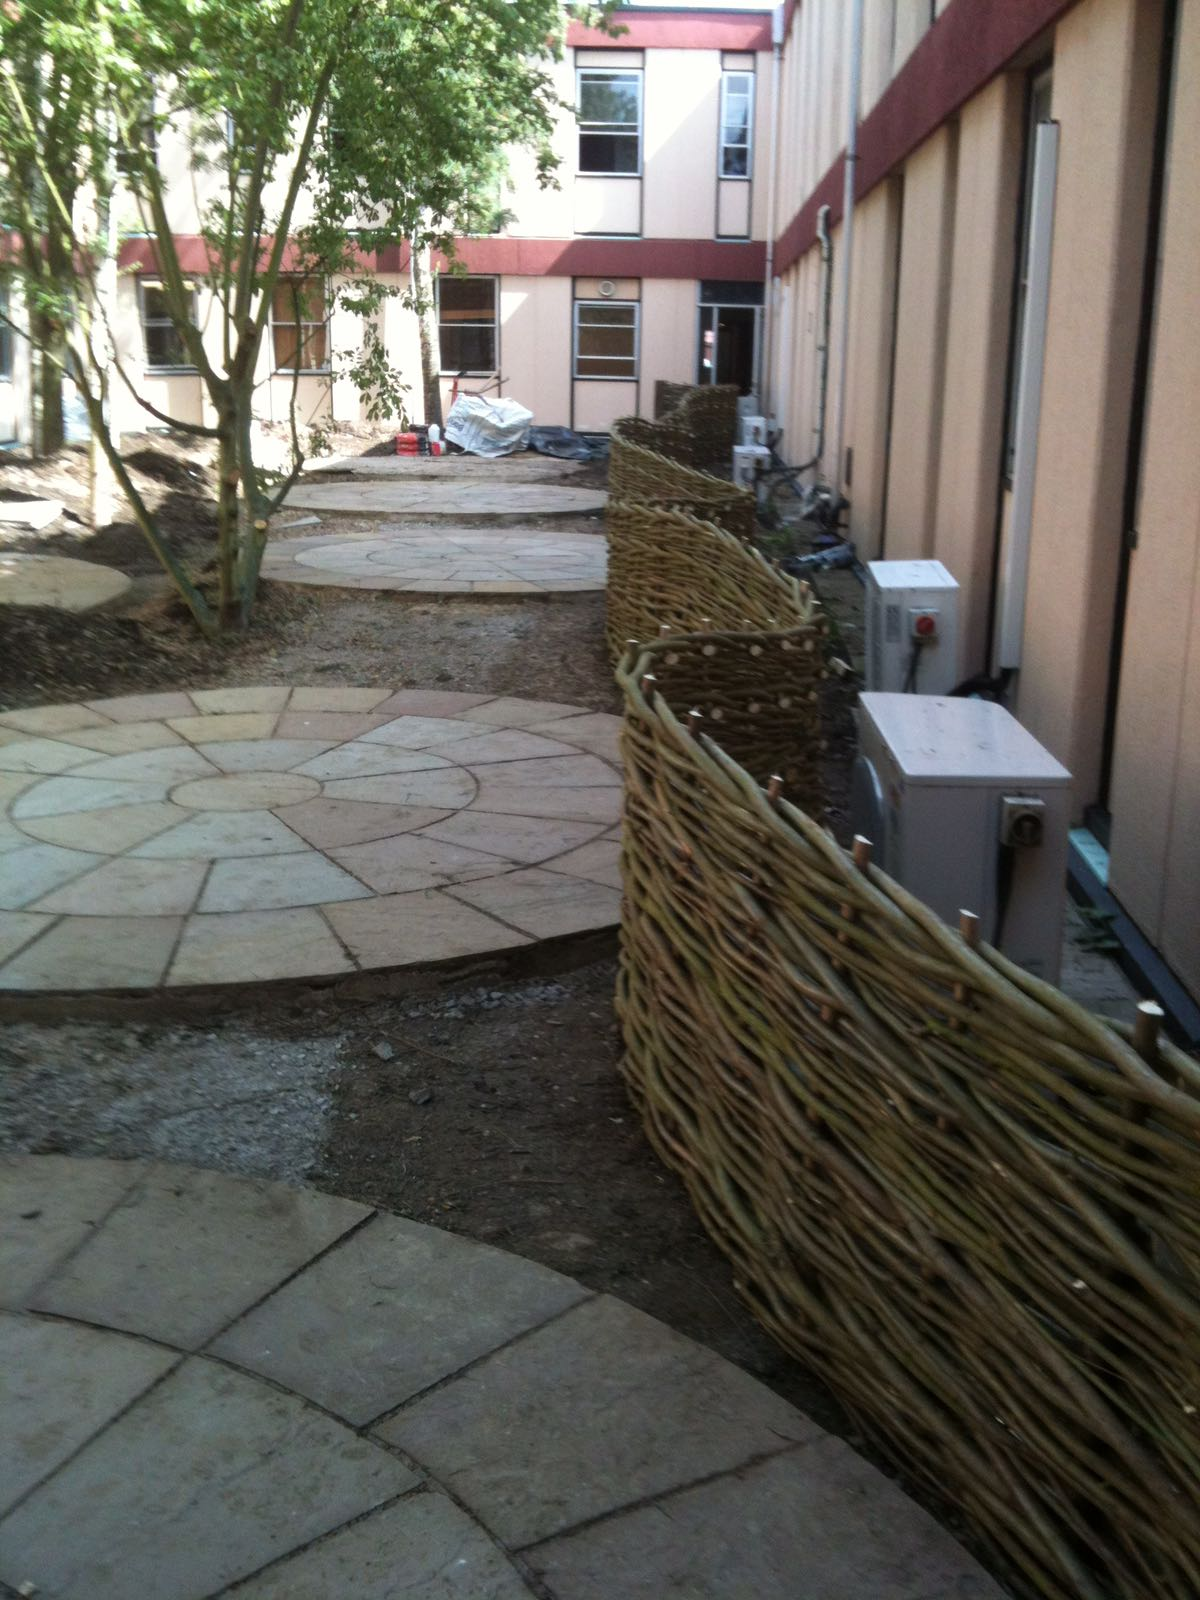 Bespoke Woven Willow Fence